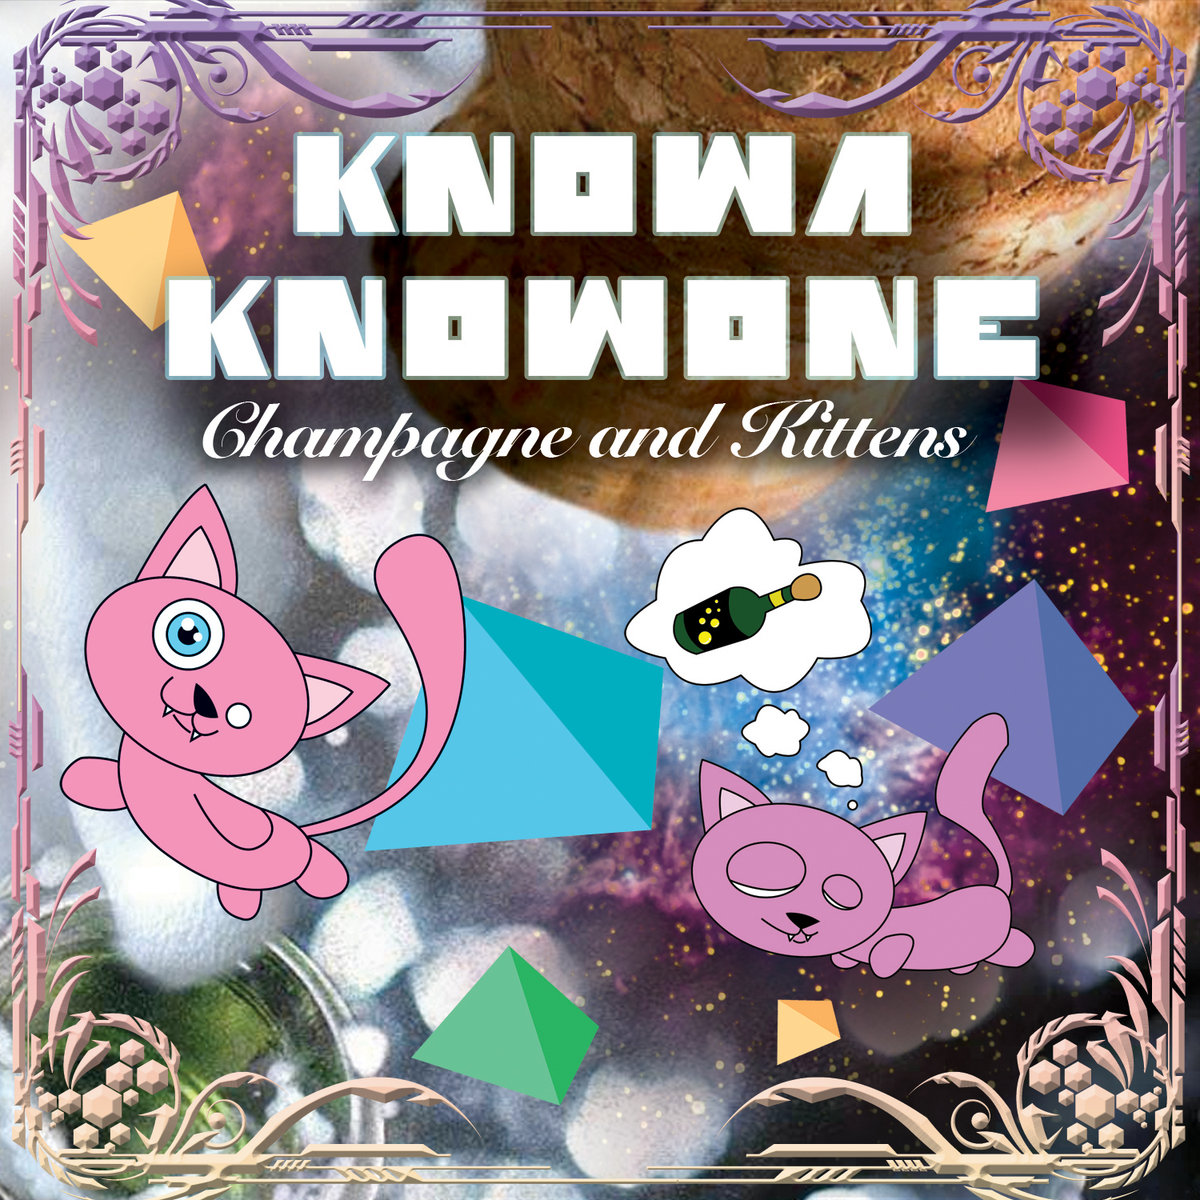 Knowa Knowone feat. Abai - Virtual Hero @ 'Champagne and Kittens' album (bass, electronic)